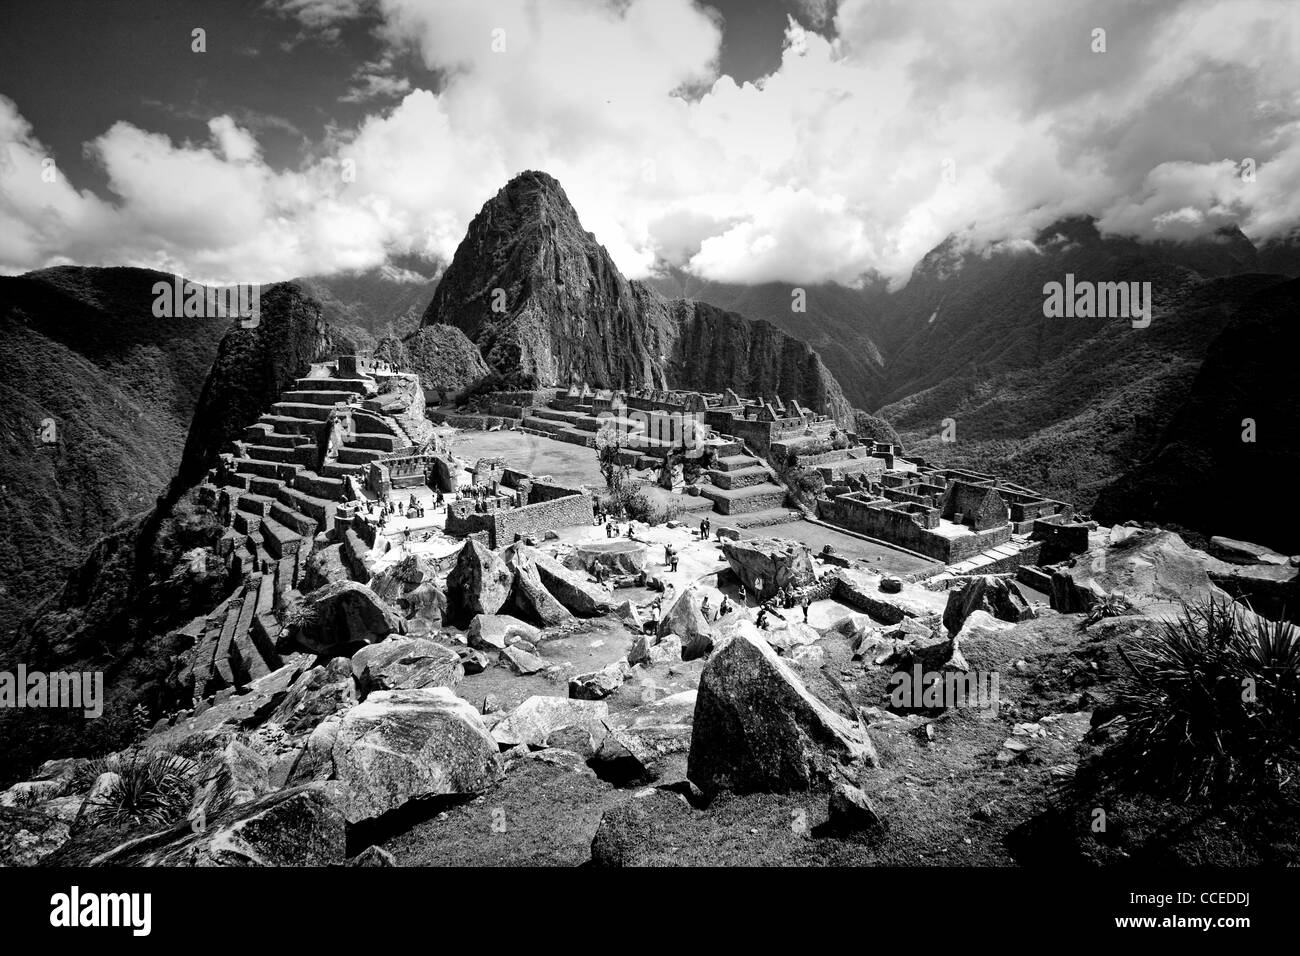 The ruins of the lost Incan city Machu Picchu, Peru. - Stock Image